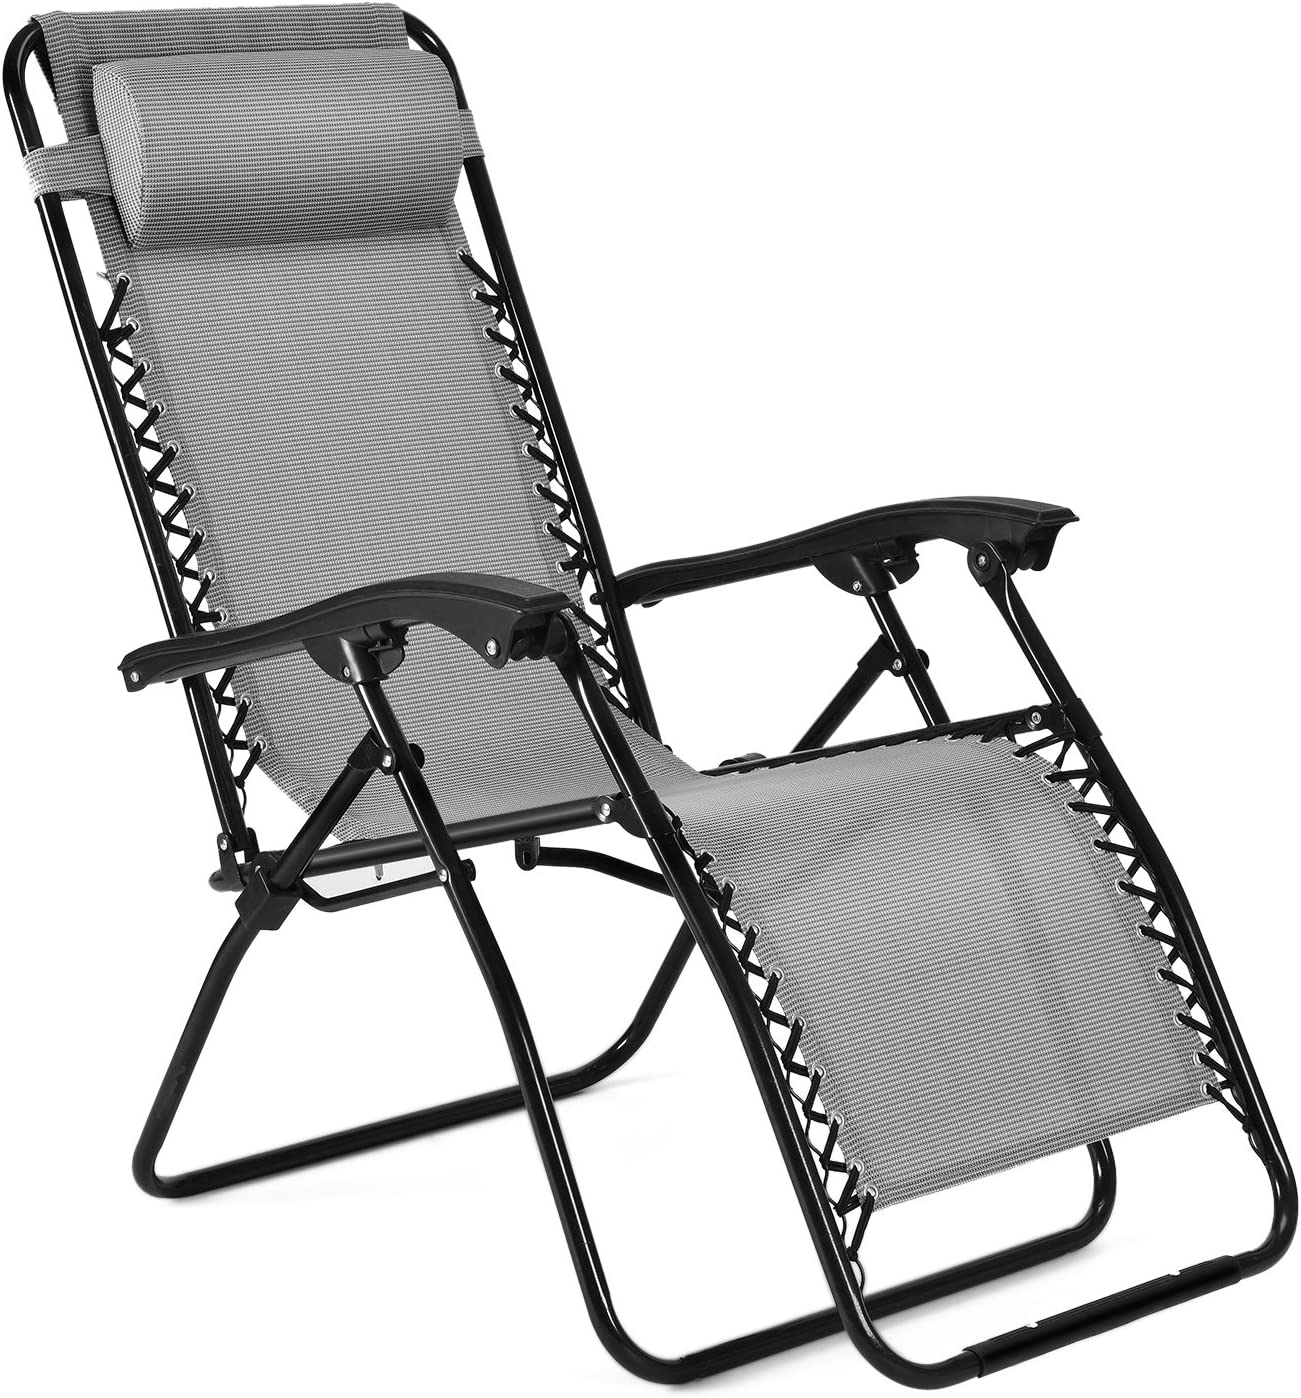 Flexzion Zero Gravity Chair - Anti Gravity Outdoor Lounge Patio Folding Reclining Chair and Textilene Seat with Footrest & Adjustable Pillow for Yard, Beach, Camping, Garden, Pool, Lawn Deck (Gray)